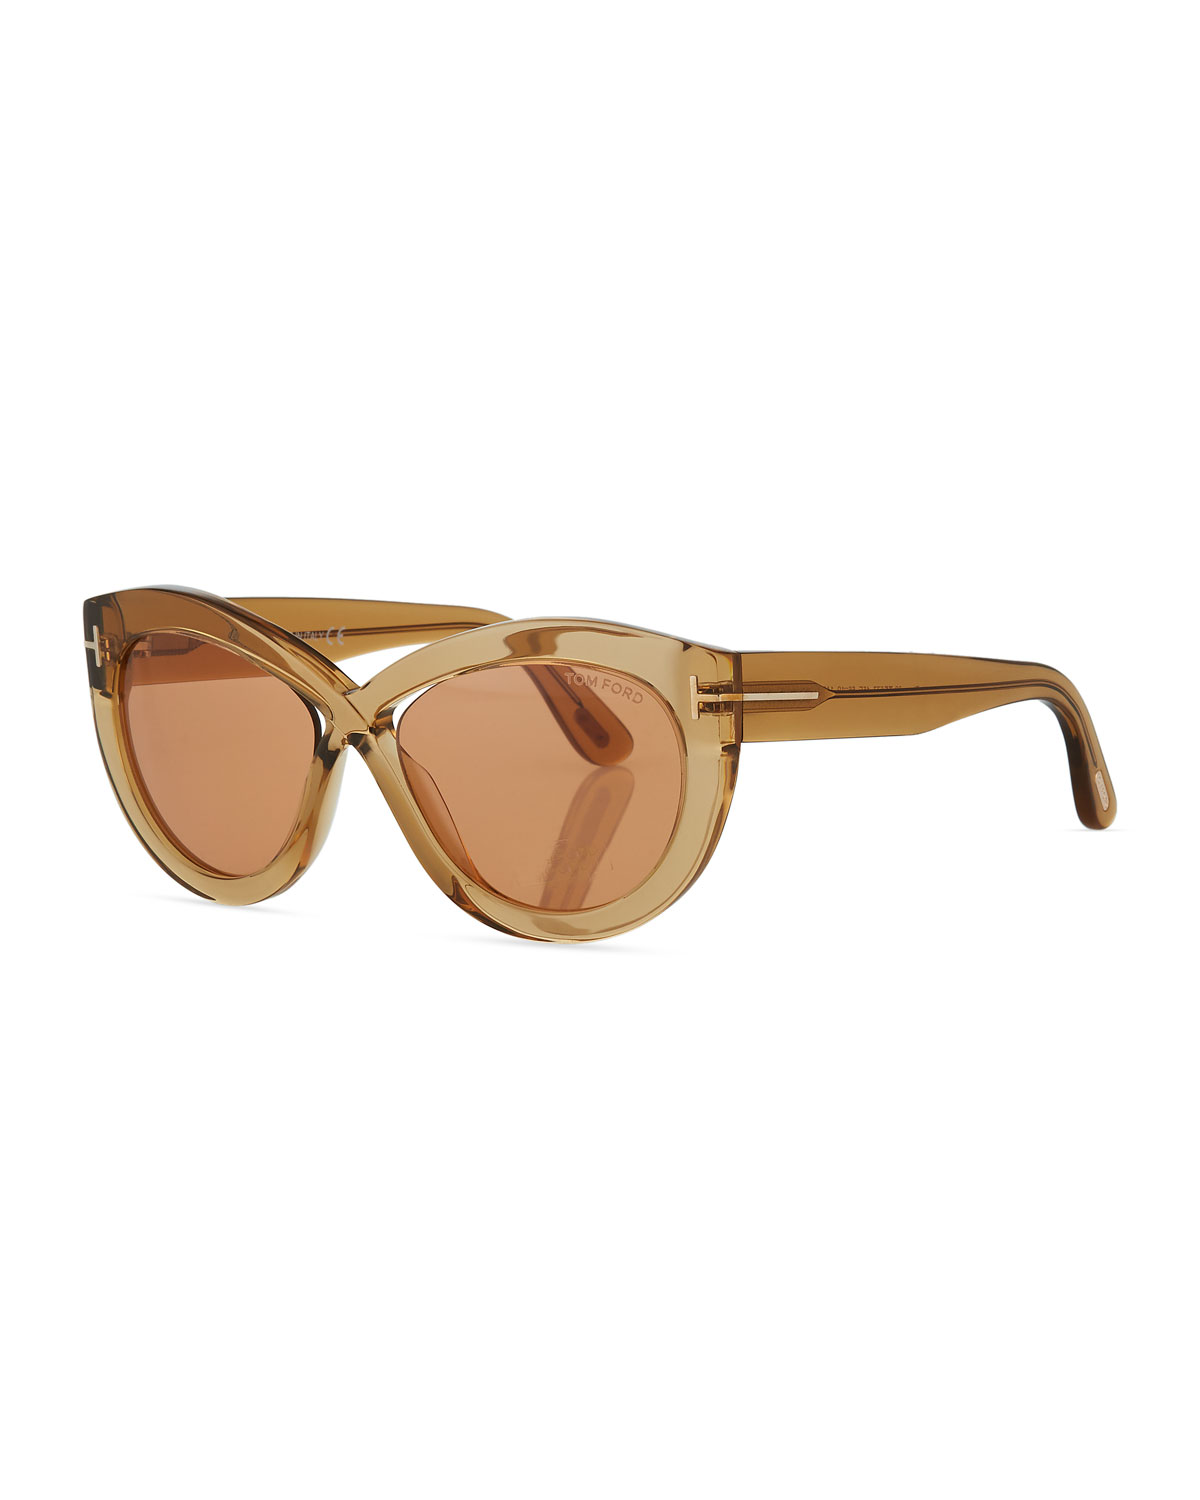 02d958b3c1 TOM FORD Diane Transparent Acetate Butterfly Sunglasses